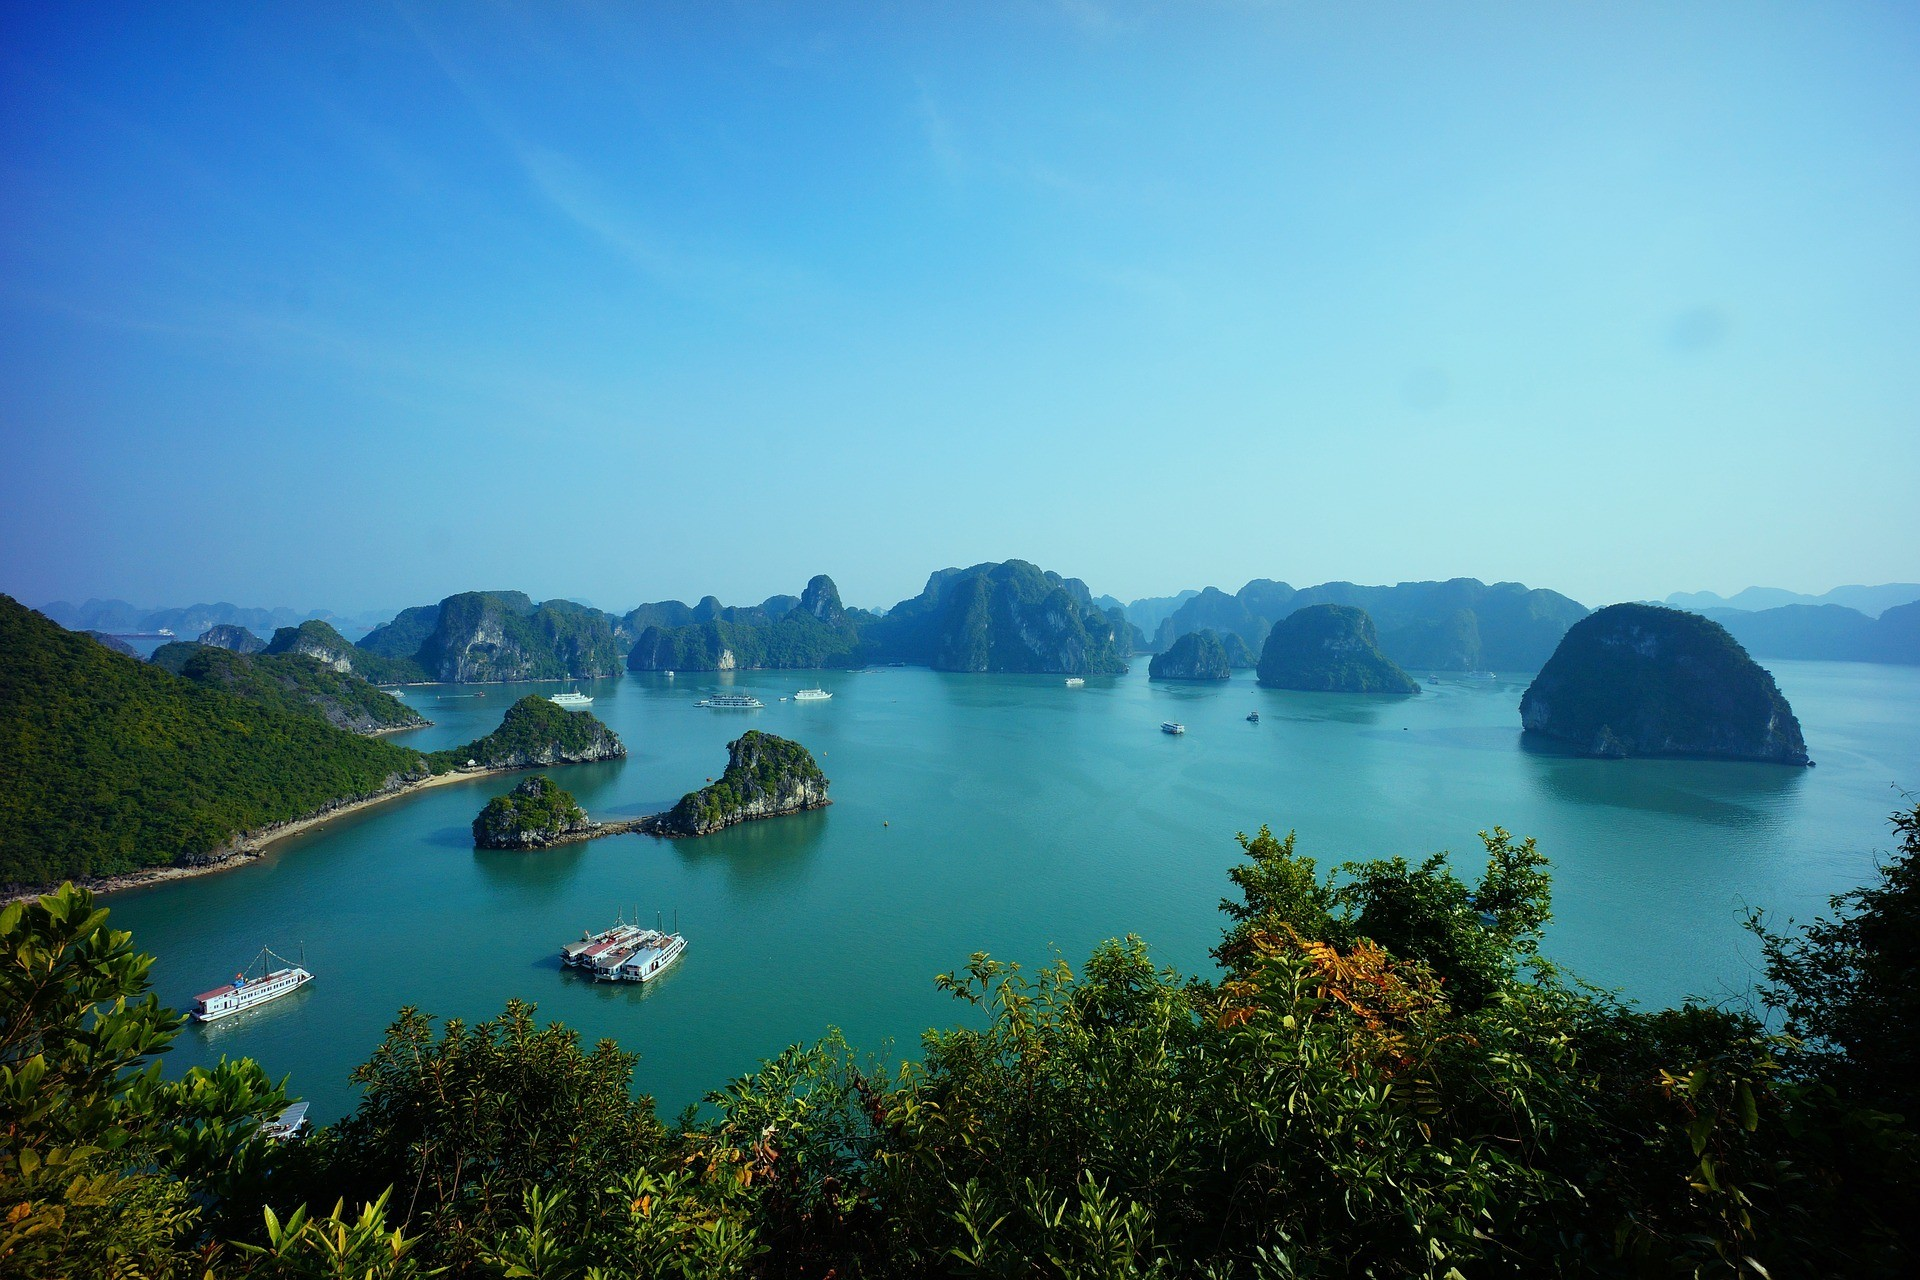 Vietnam could better seize the momentum by focusing more on its environmental sustainability policies.